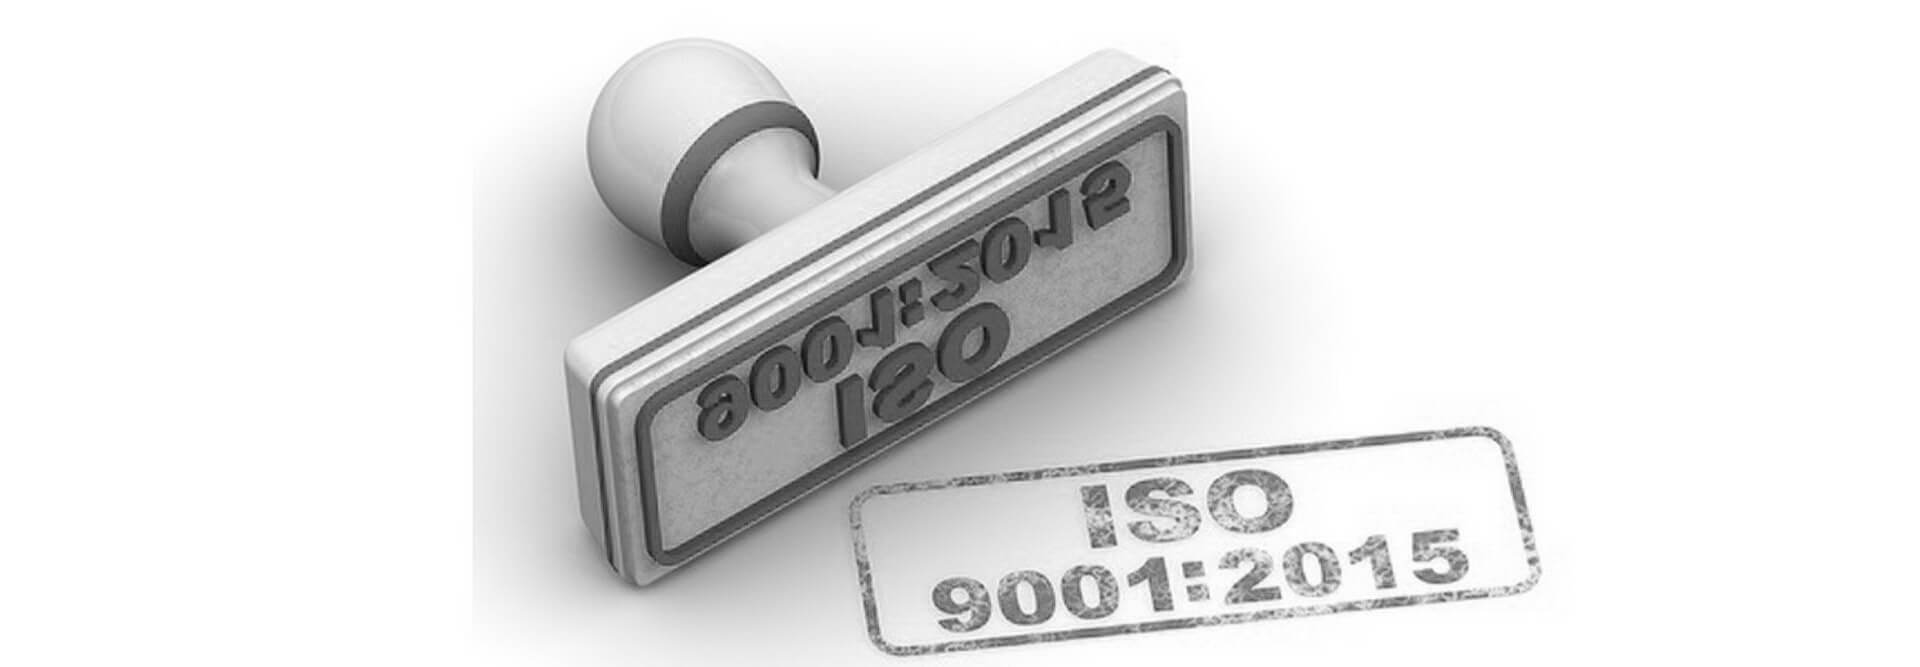 How to do a successful ISO 9001 certification process within one month